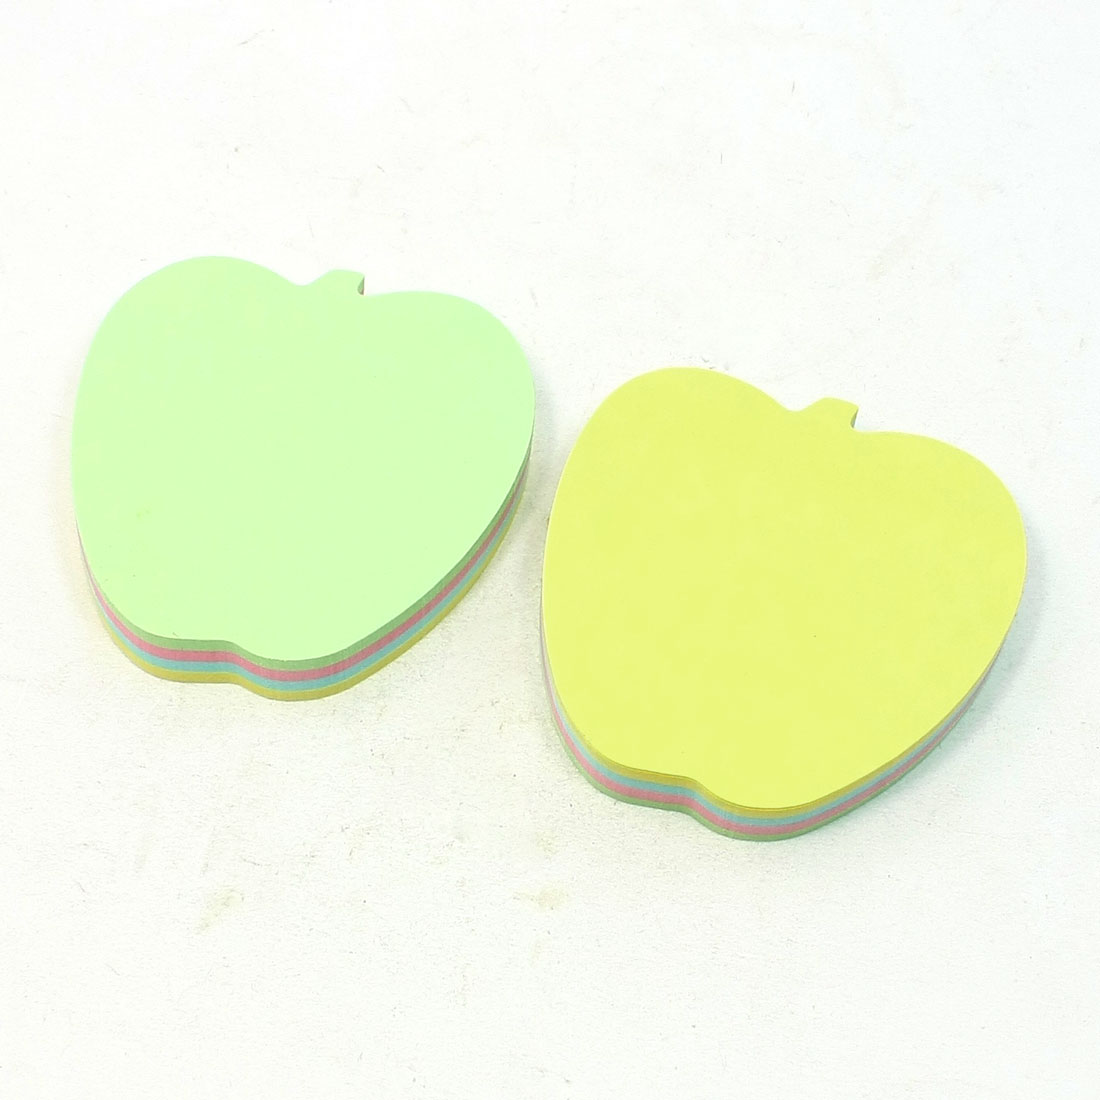 Office Apple Shape Memo Paper Self Sticky Series Note Pad 200 Sheets